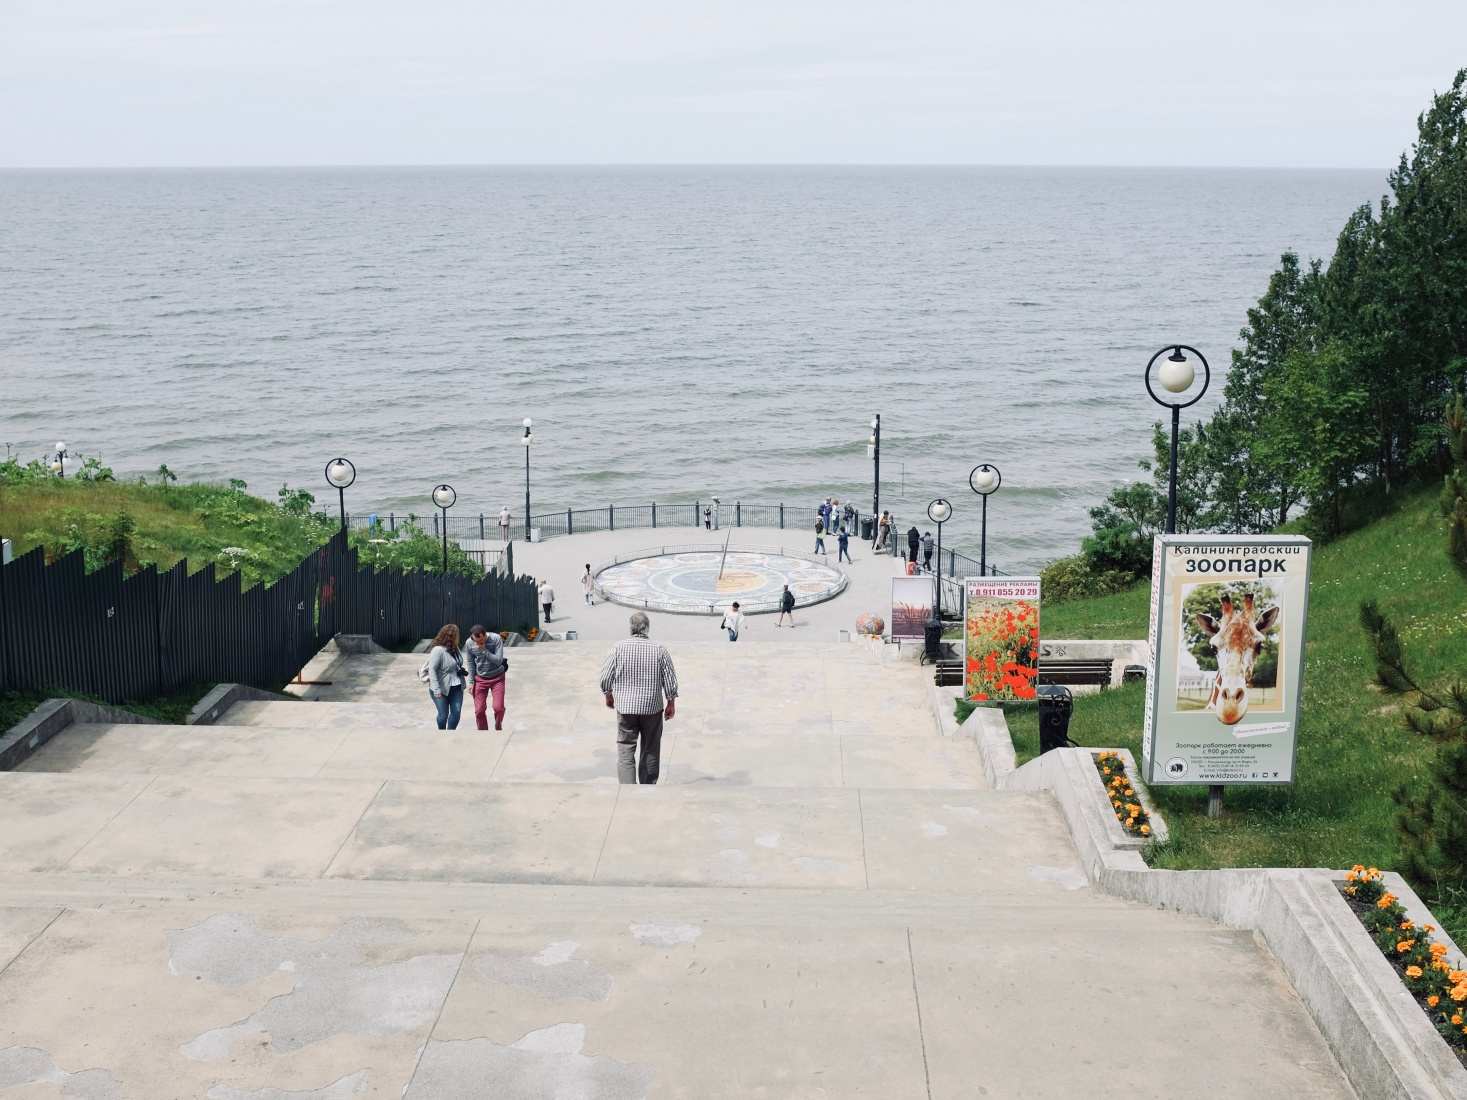 Seaside promenade in Svetlogorsk with large stairs and a sundial. Near Kaliningrad, Russia.